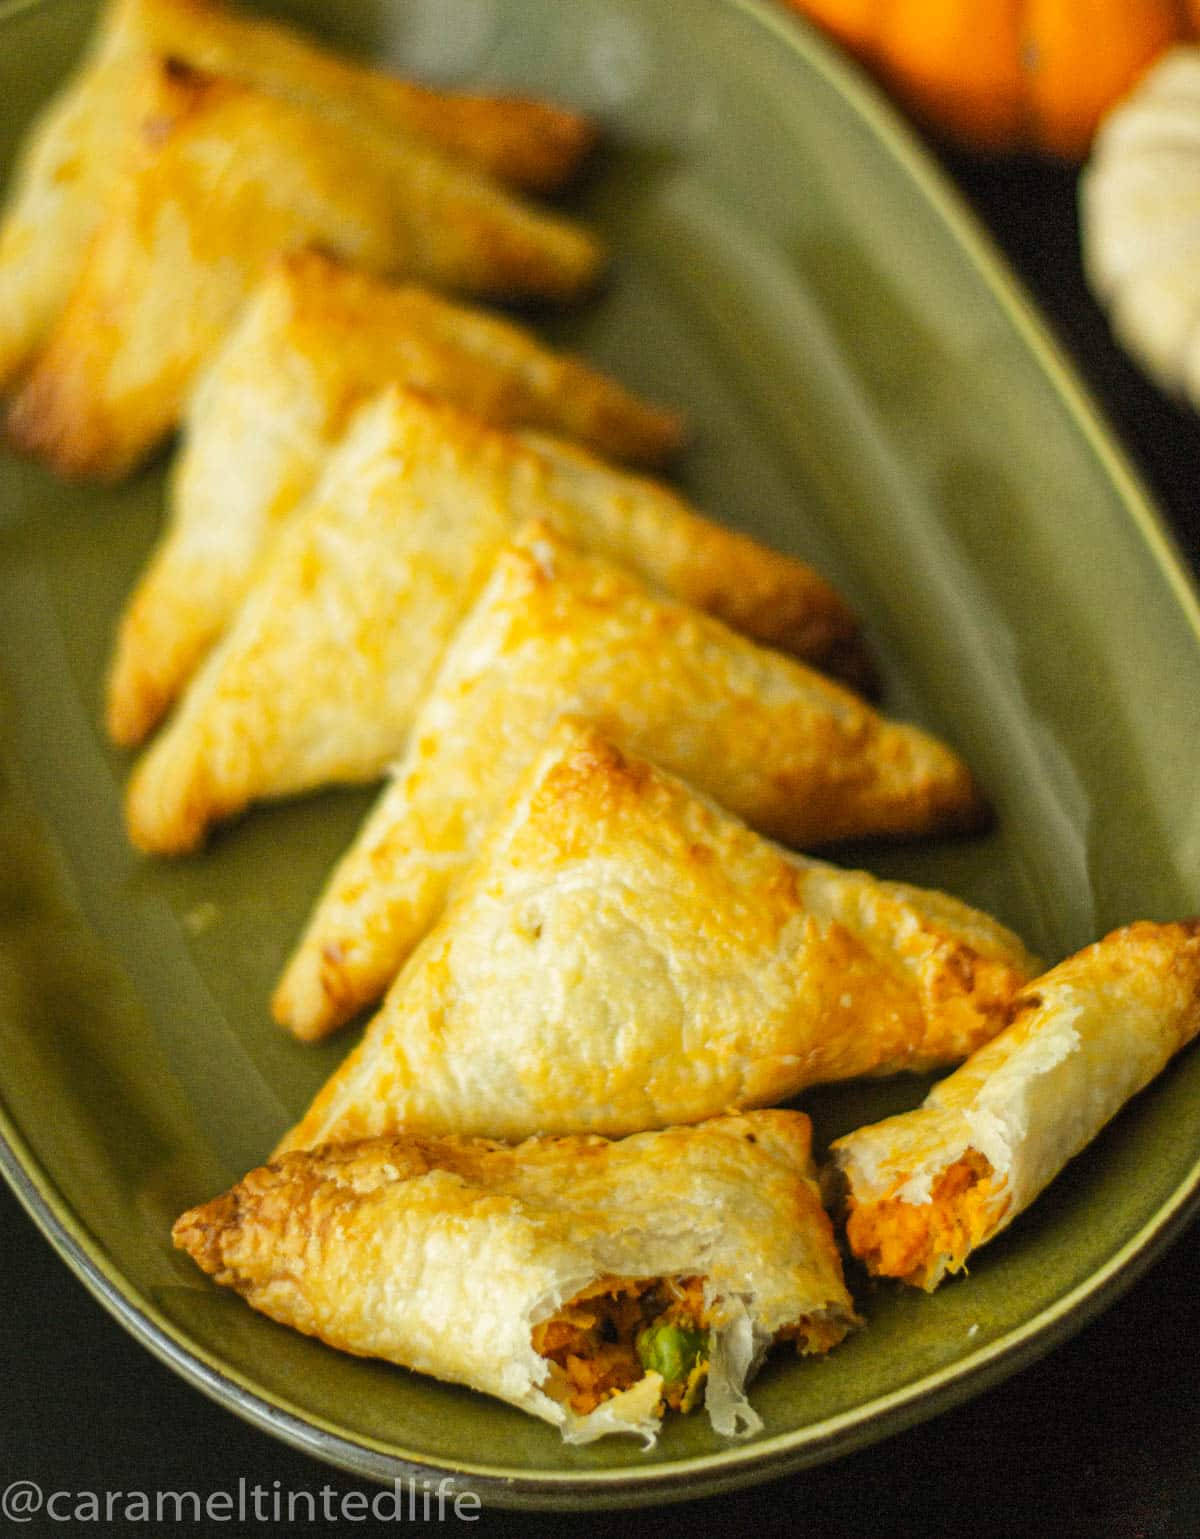 Puff pastry samosas arranged on a green plate